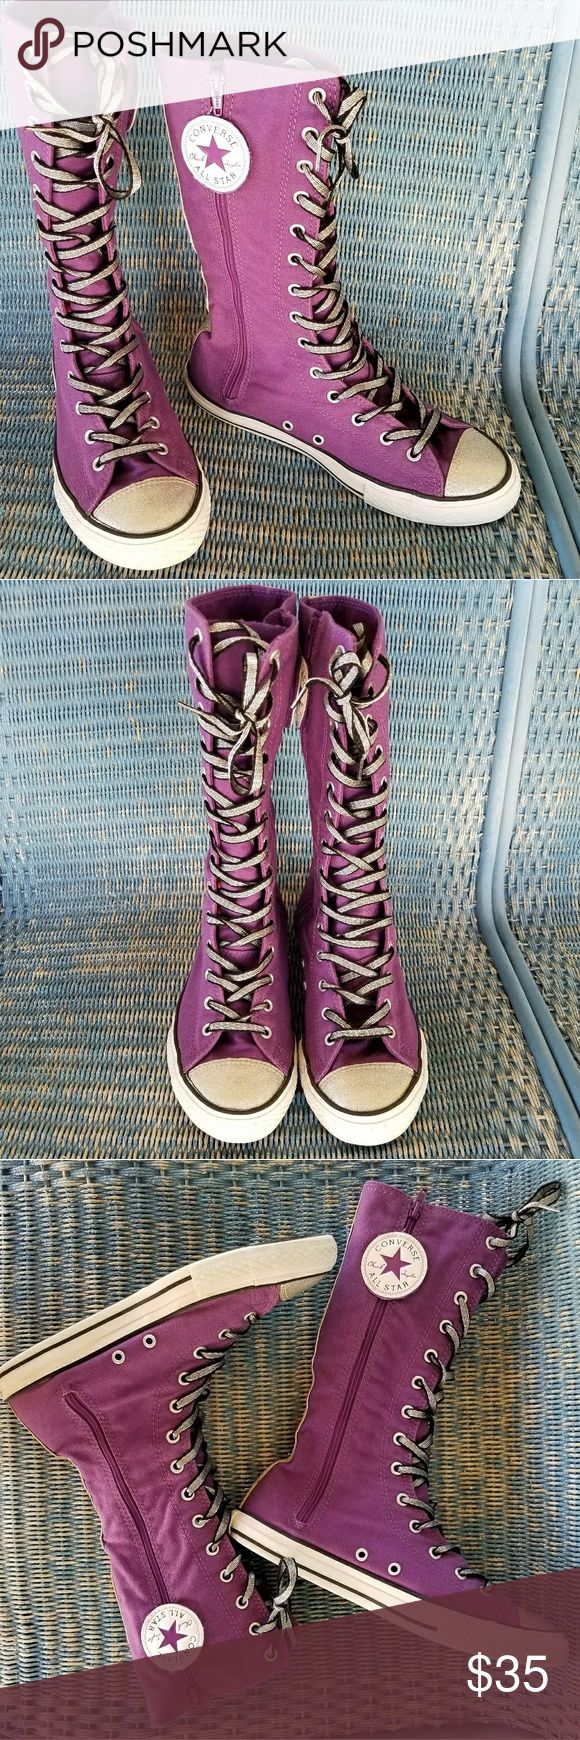 """Purple Zip Chuck Taylor Glitter High Top Converse ***Last photo shows true color***  This is a pair of Chuck Taylors by Converse.  They are in excellent condition!  Shoes are a youth size 5.5...I believe that converts to women's size 7.5/8 Length of shoe is 10.5 inches long.  Dark purple in color with white soles and silver glitter toes with silver glitter trim up the back of the shoe.  The laces are black and metallic silver. Shoes lace up or zip up the side and velcro.  Shoes measure 11""""…"""